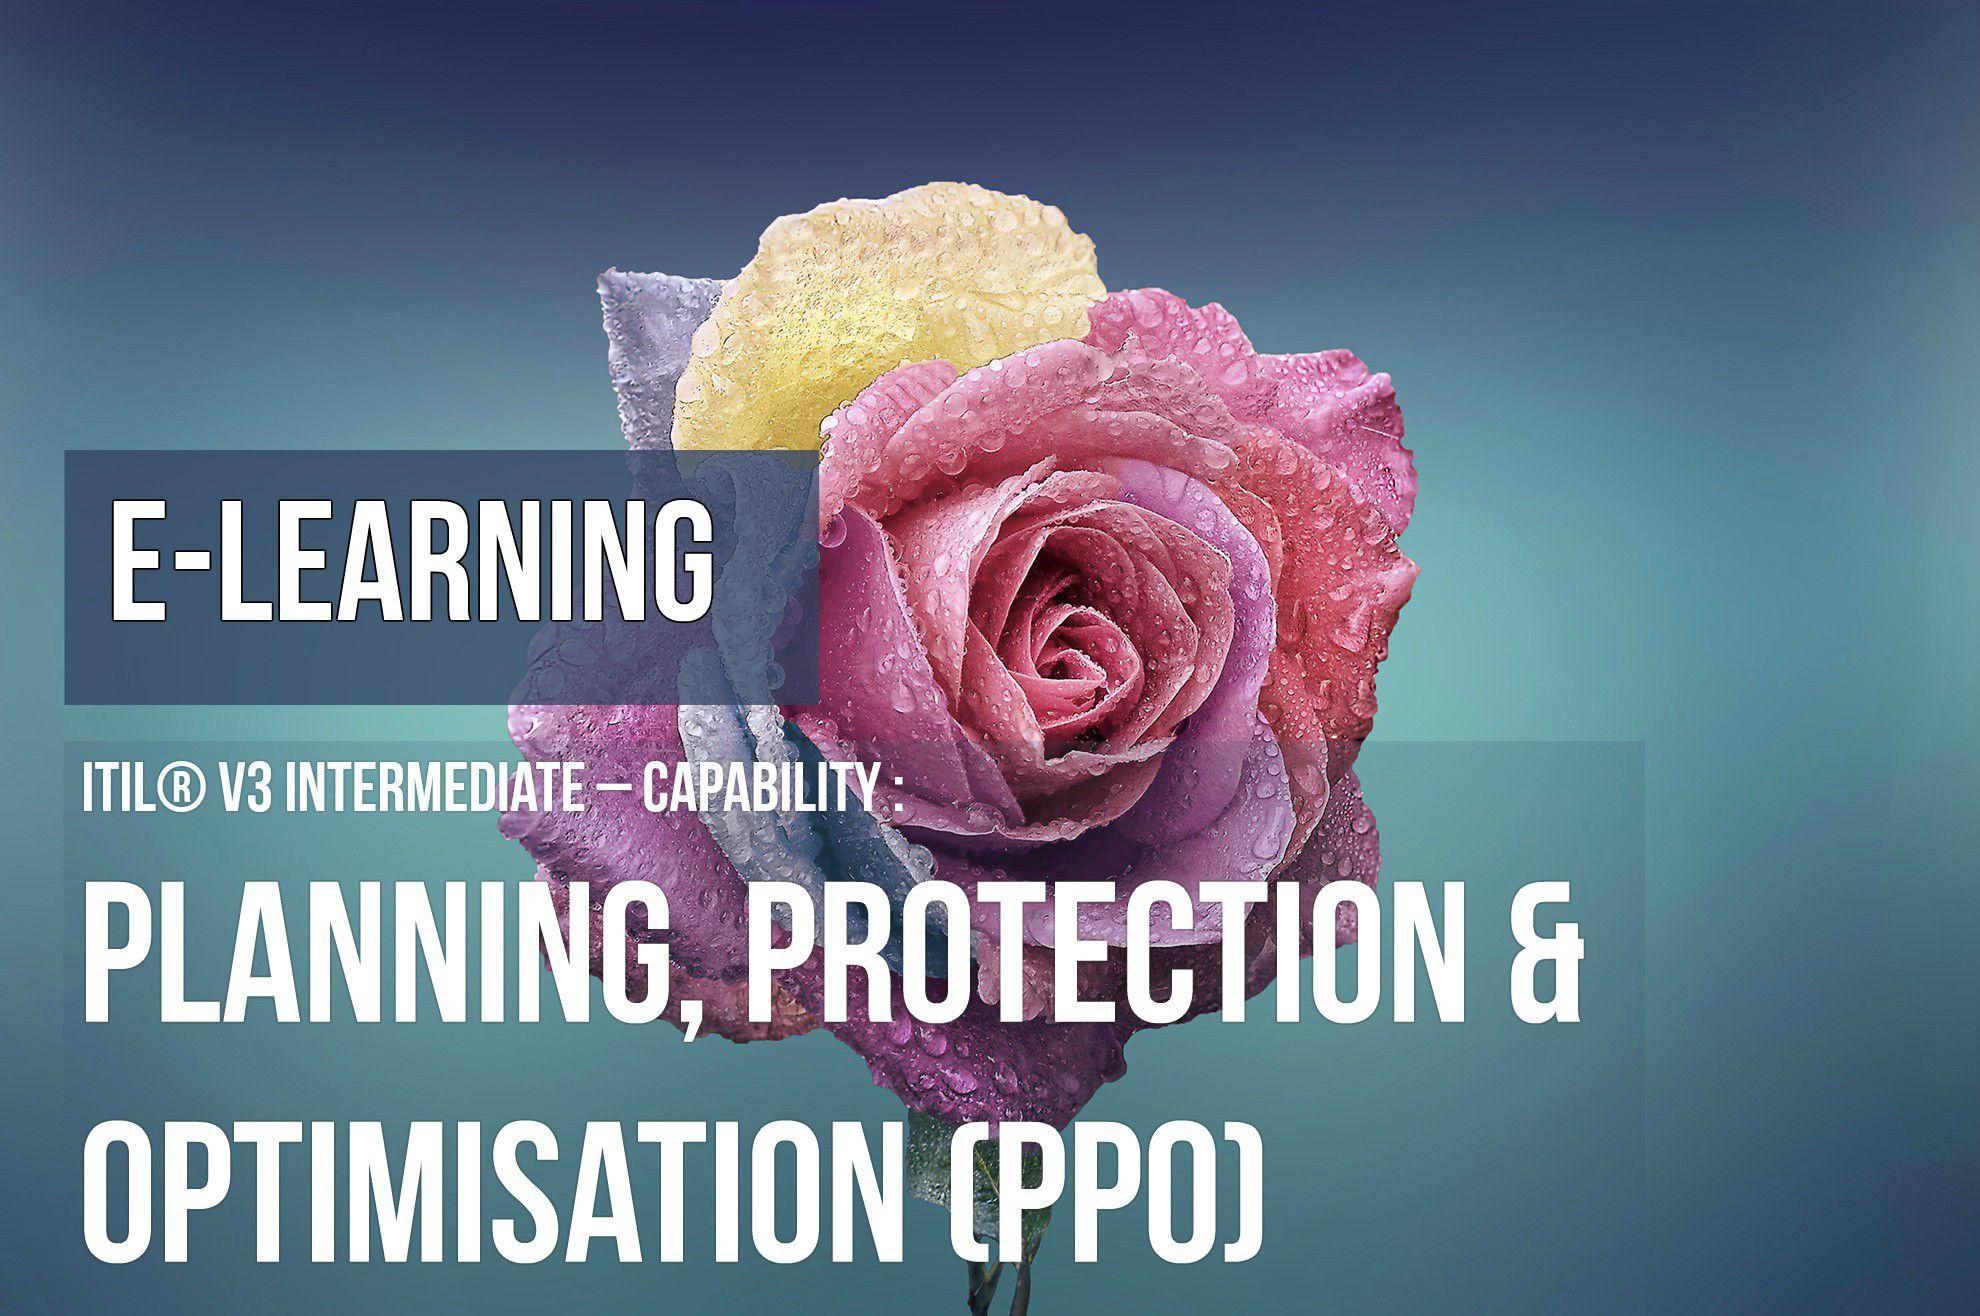 ITS Partner - ITIL Planning Protection Optimisation e-learning and certification